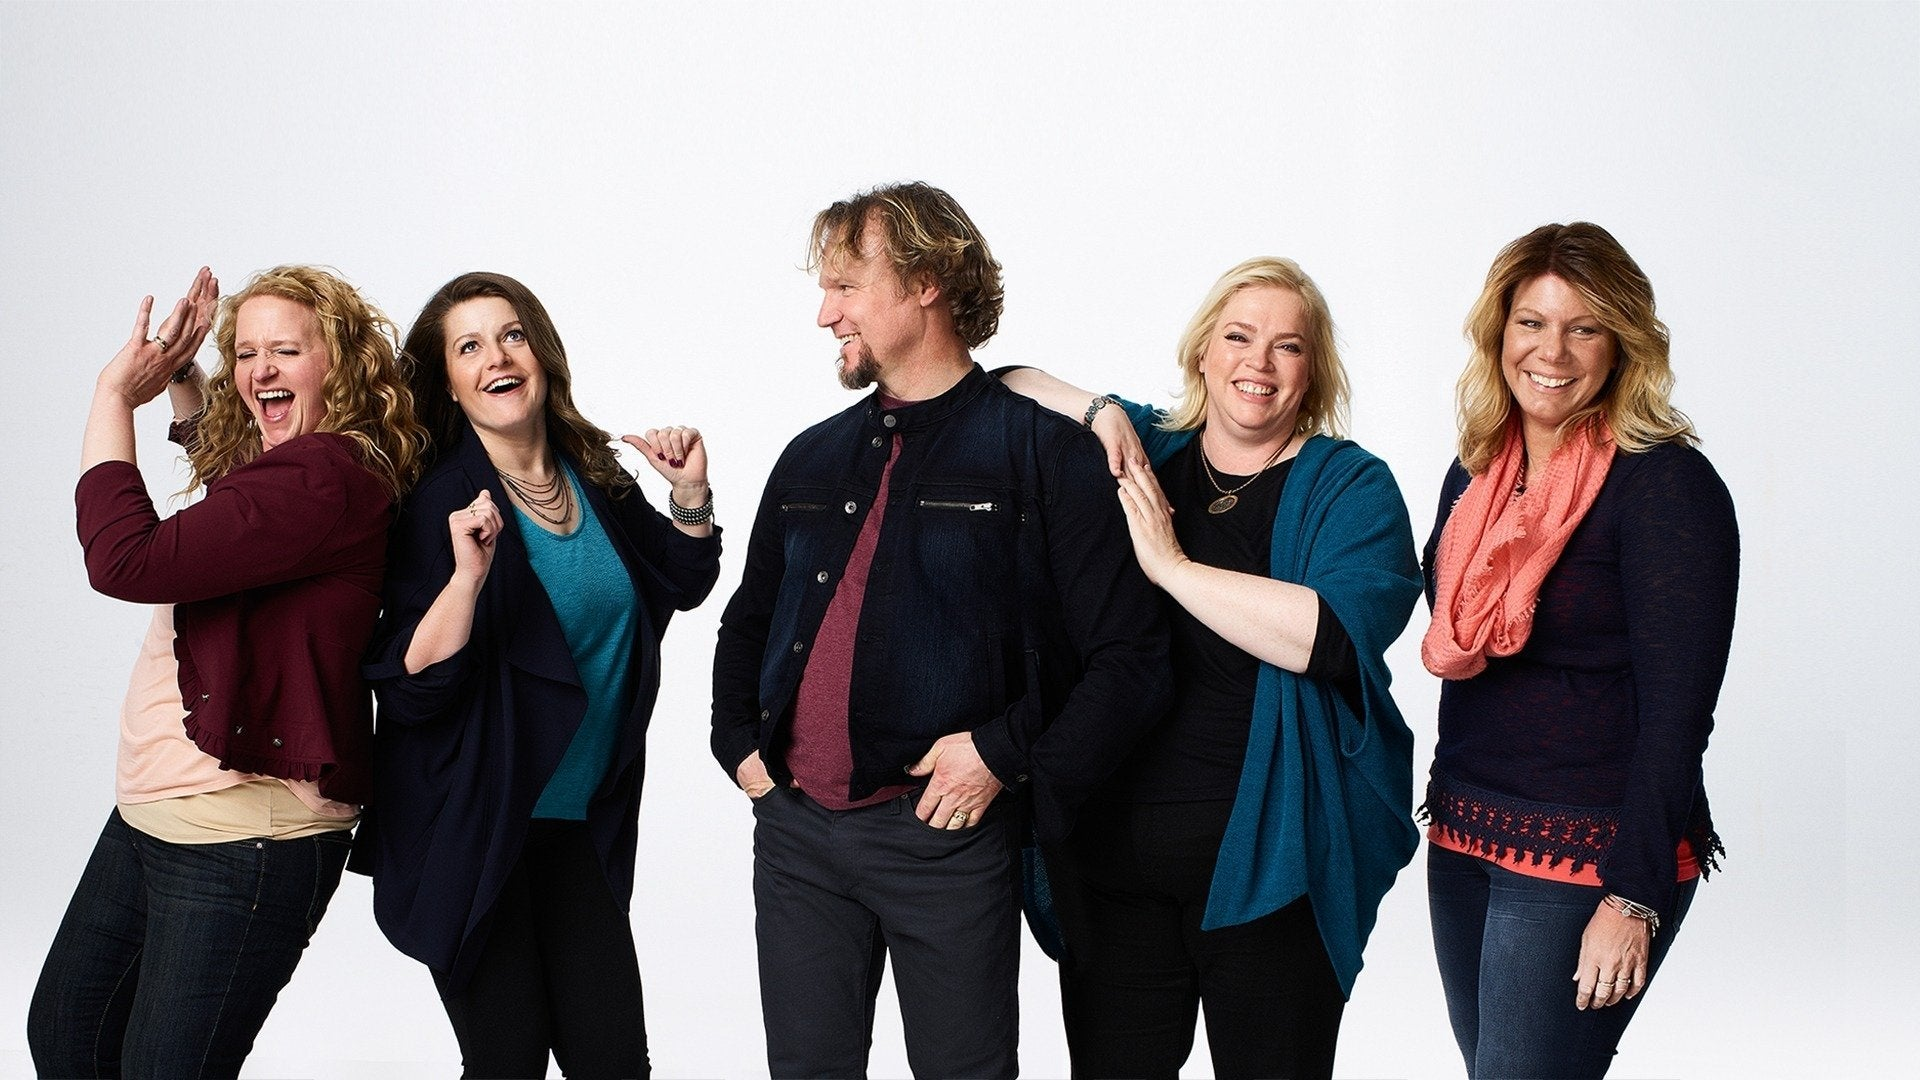 Sister Wives: Countdown to the New Season